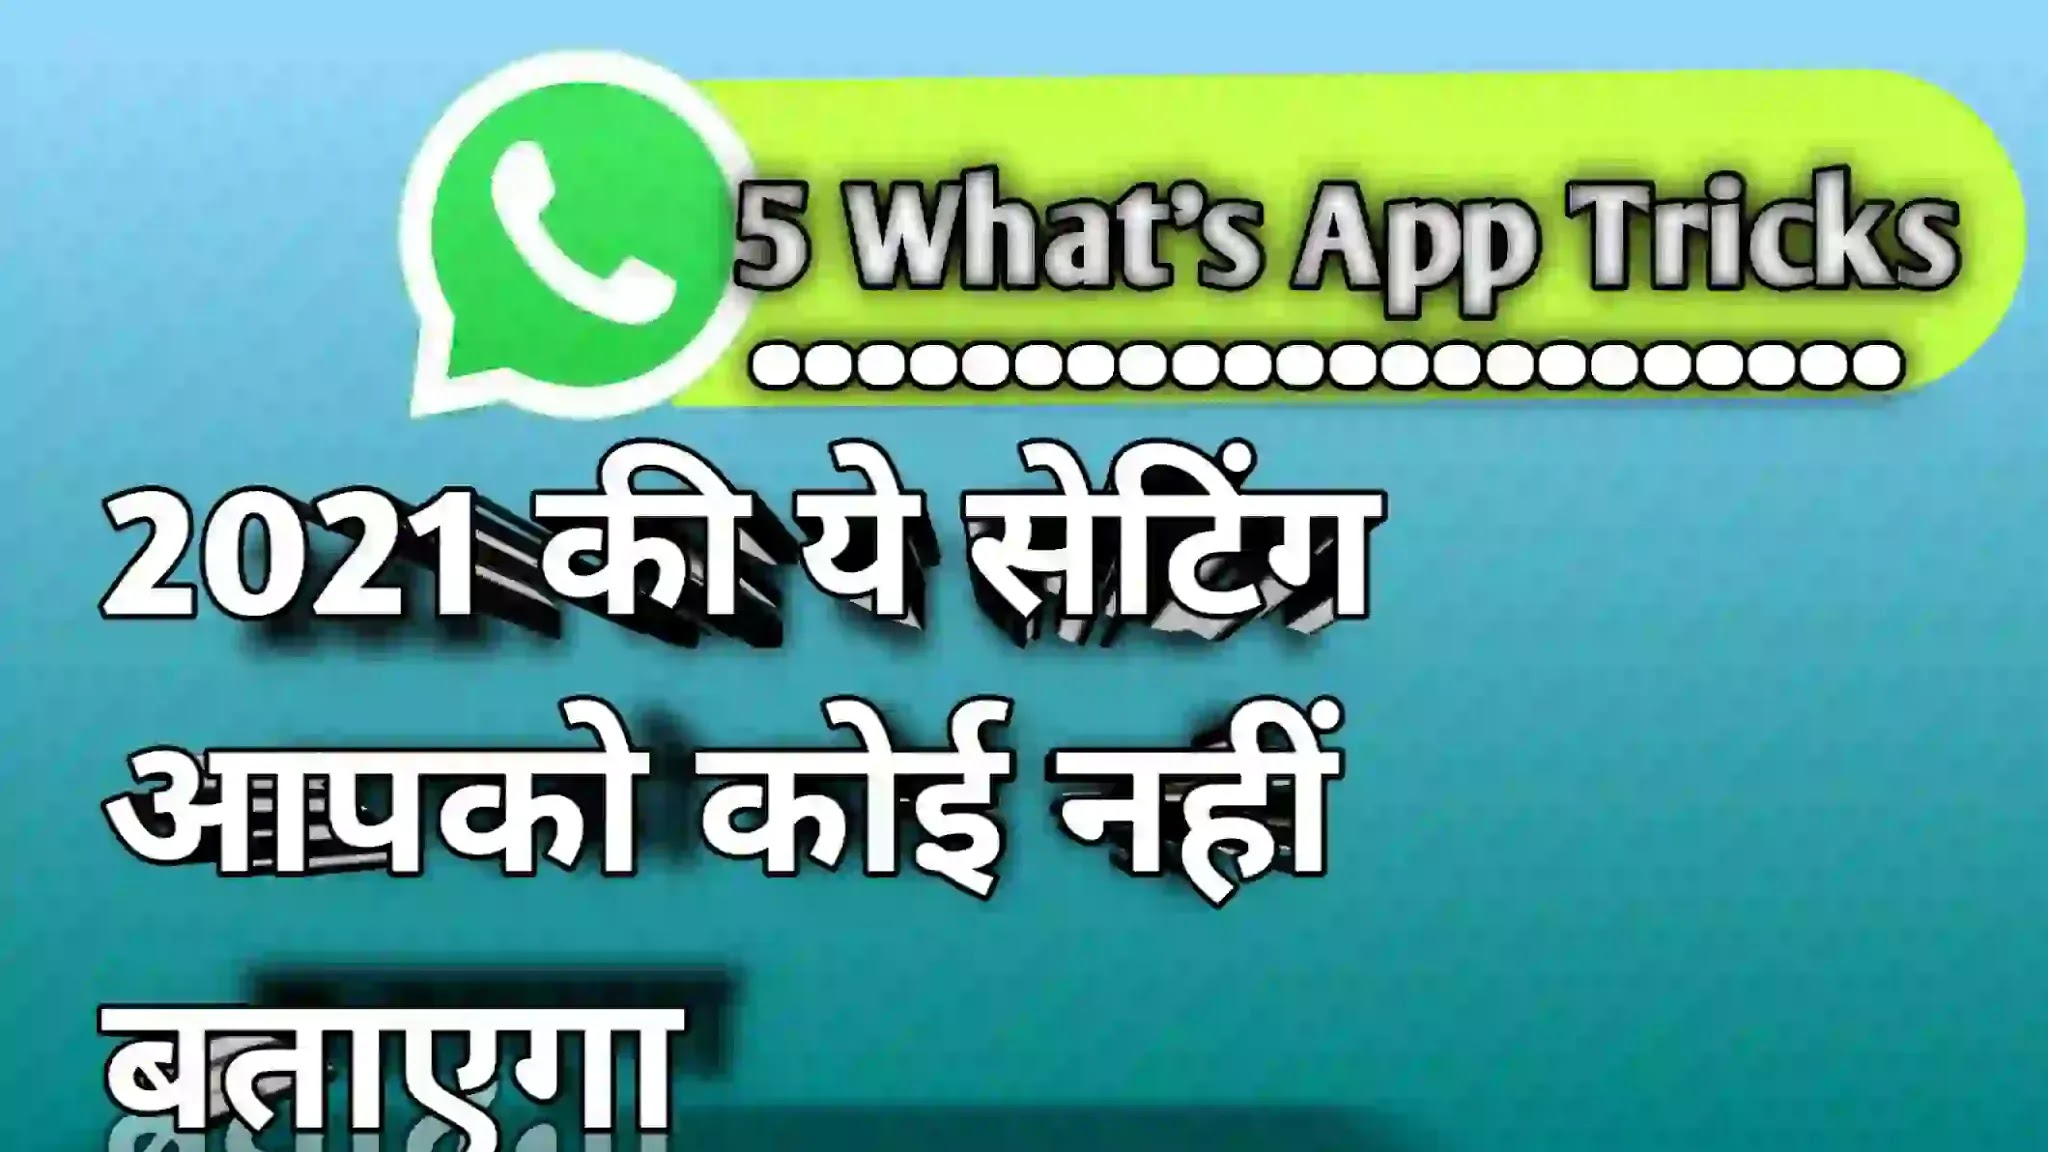 5 whatsapp tricks